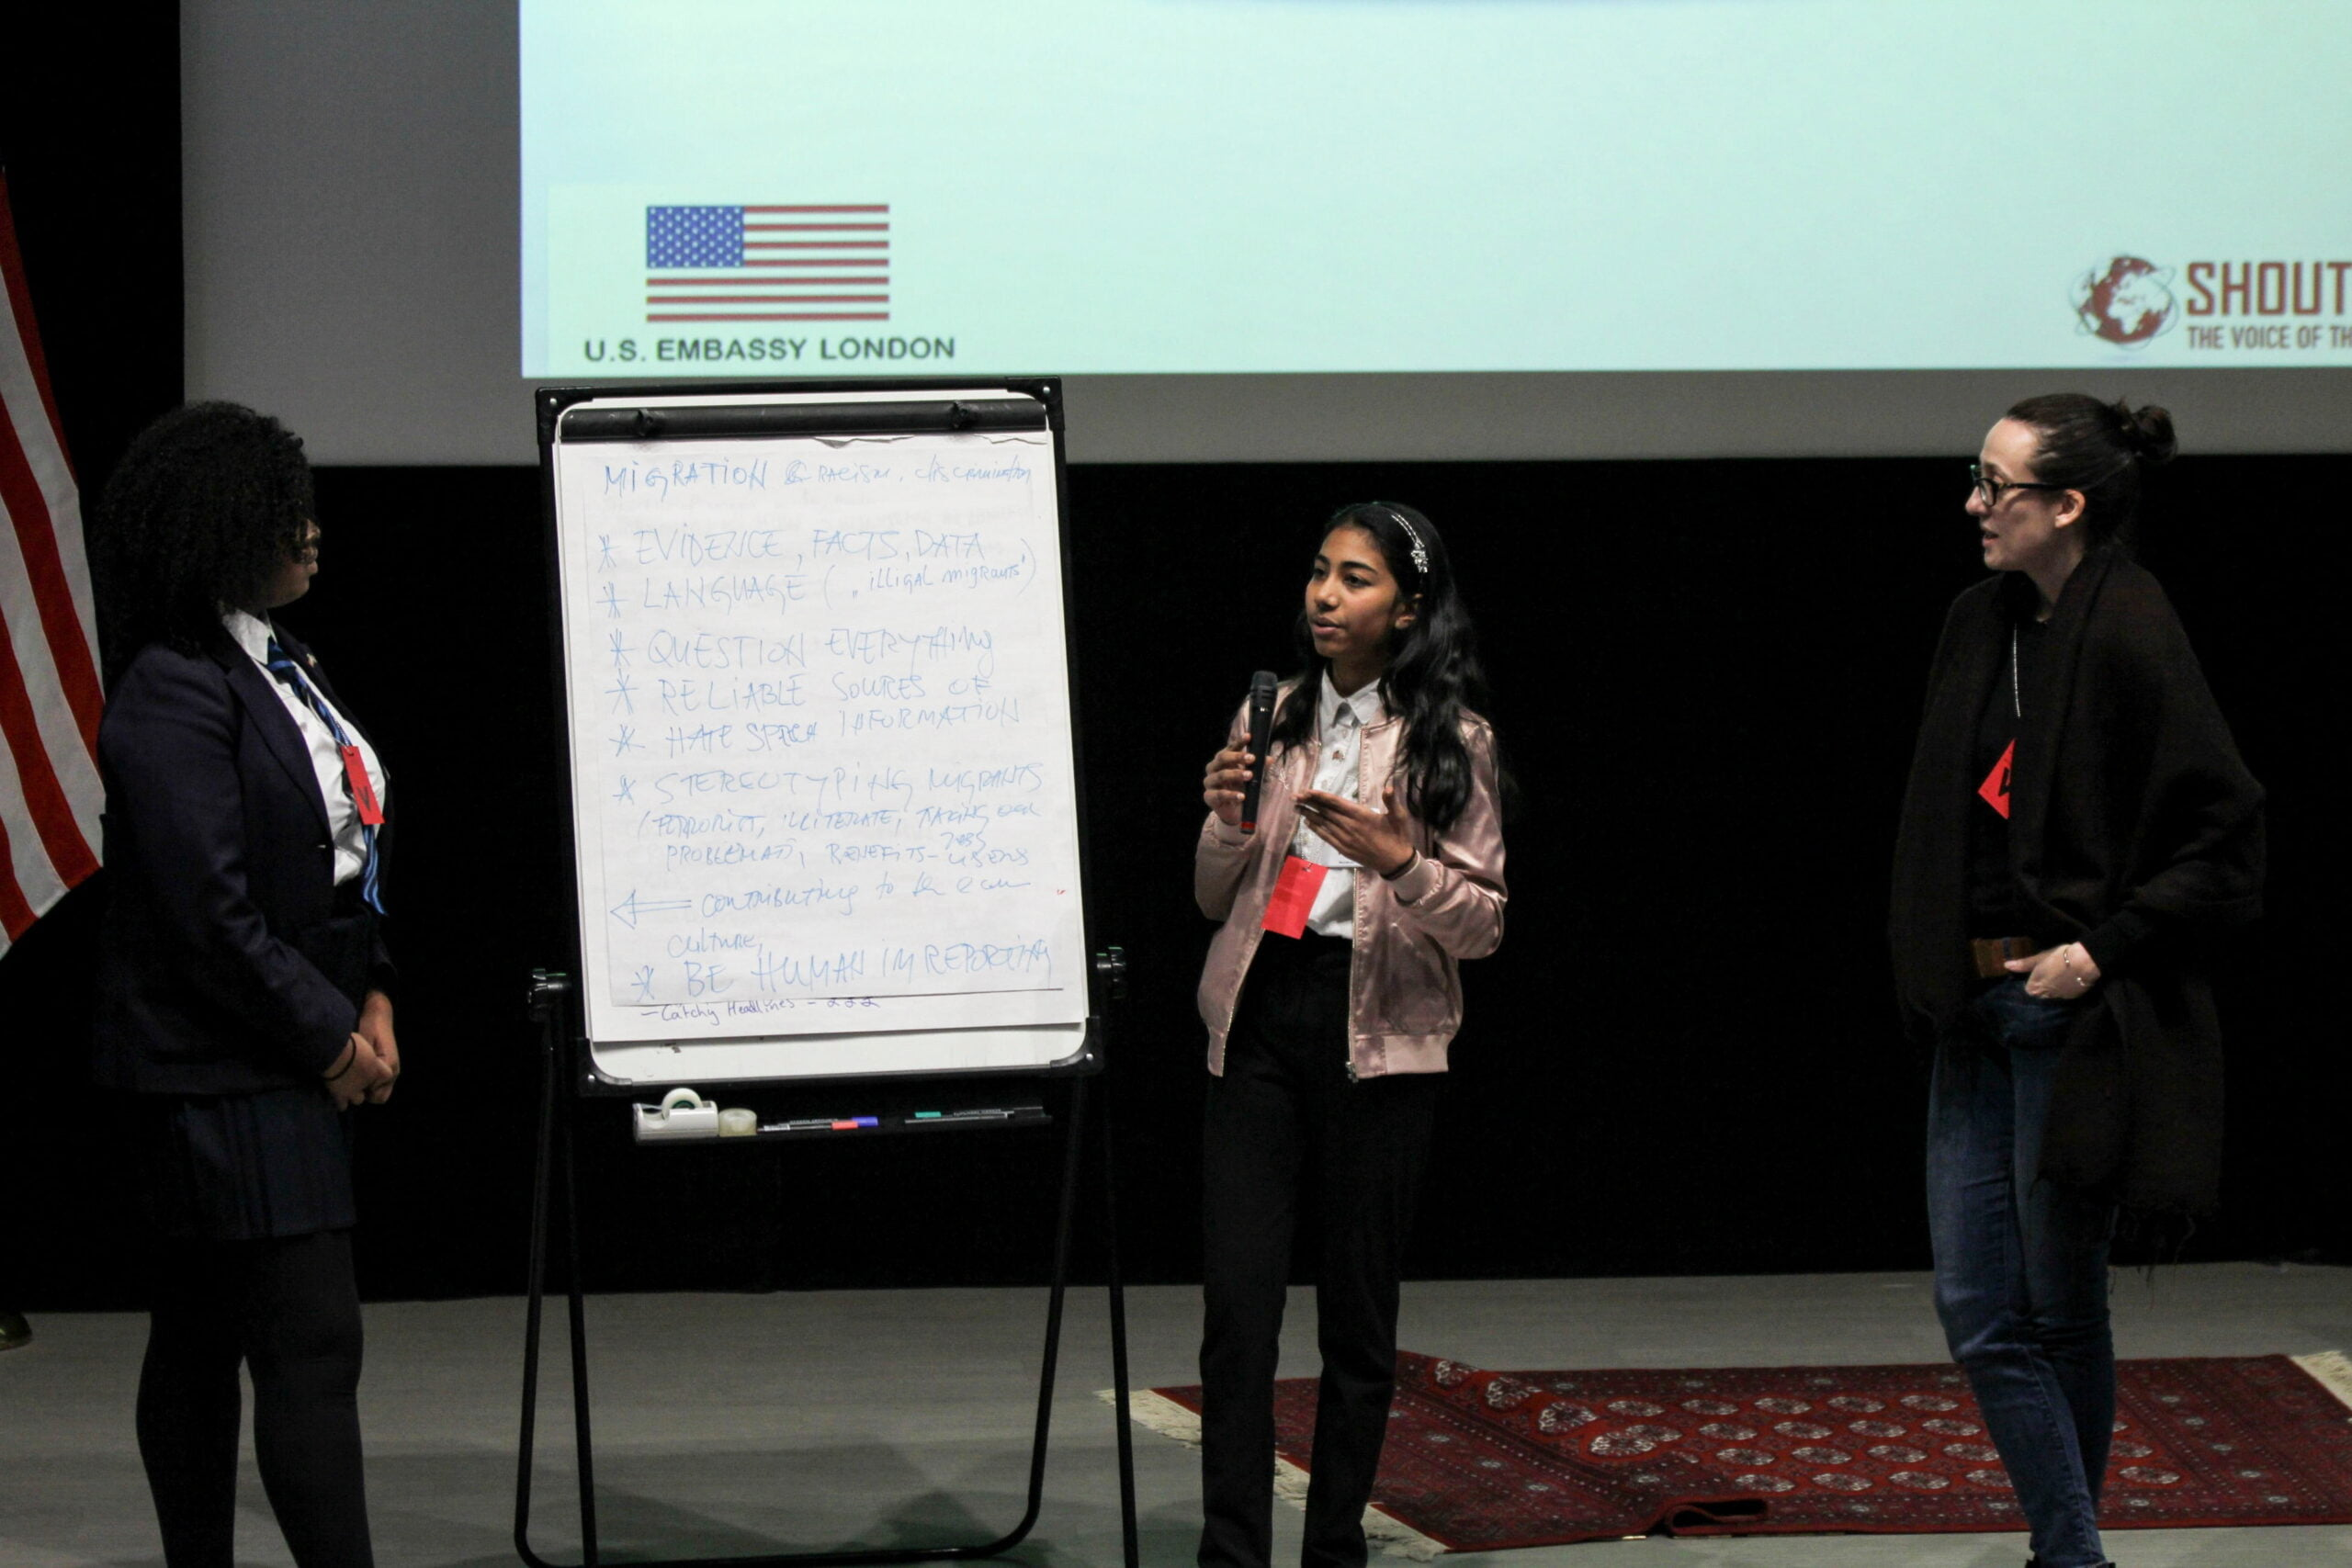 Shout Out UK and students dive deep into media literacy at U.S. Embassy London